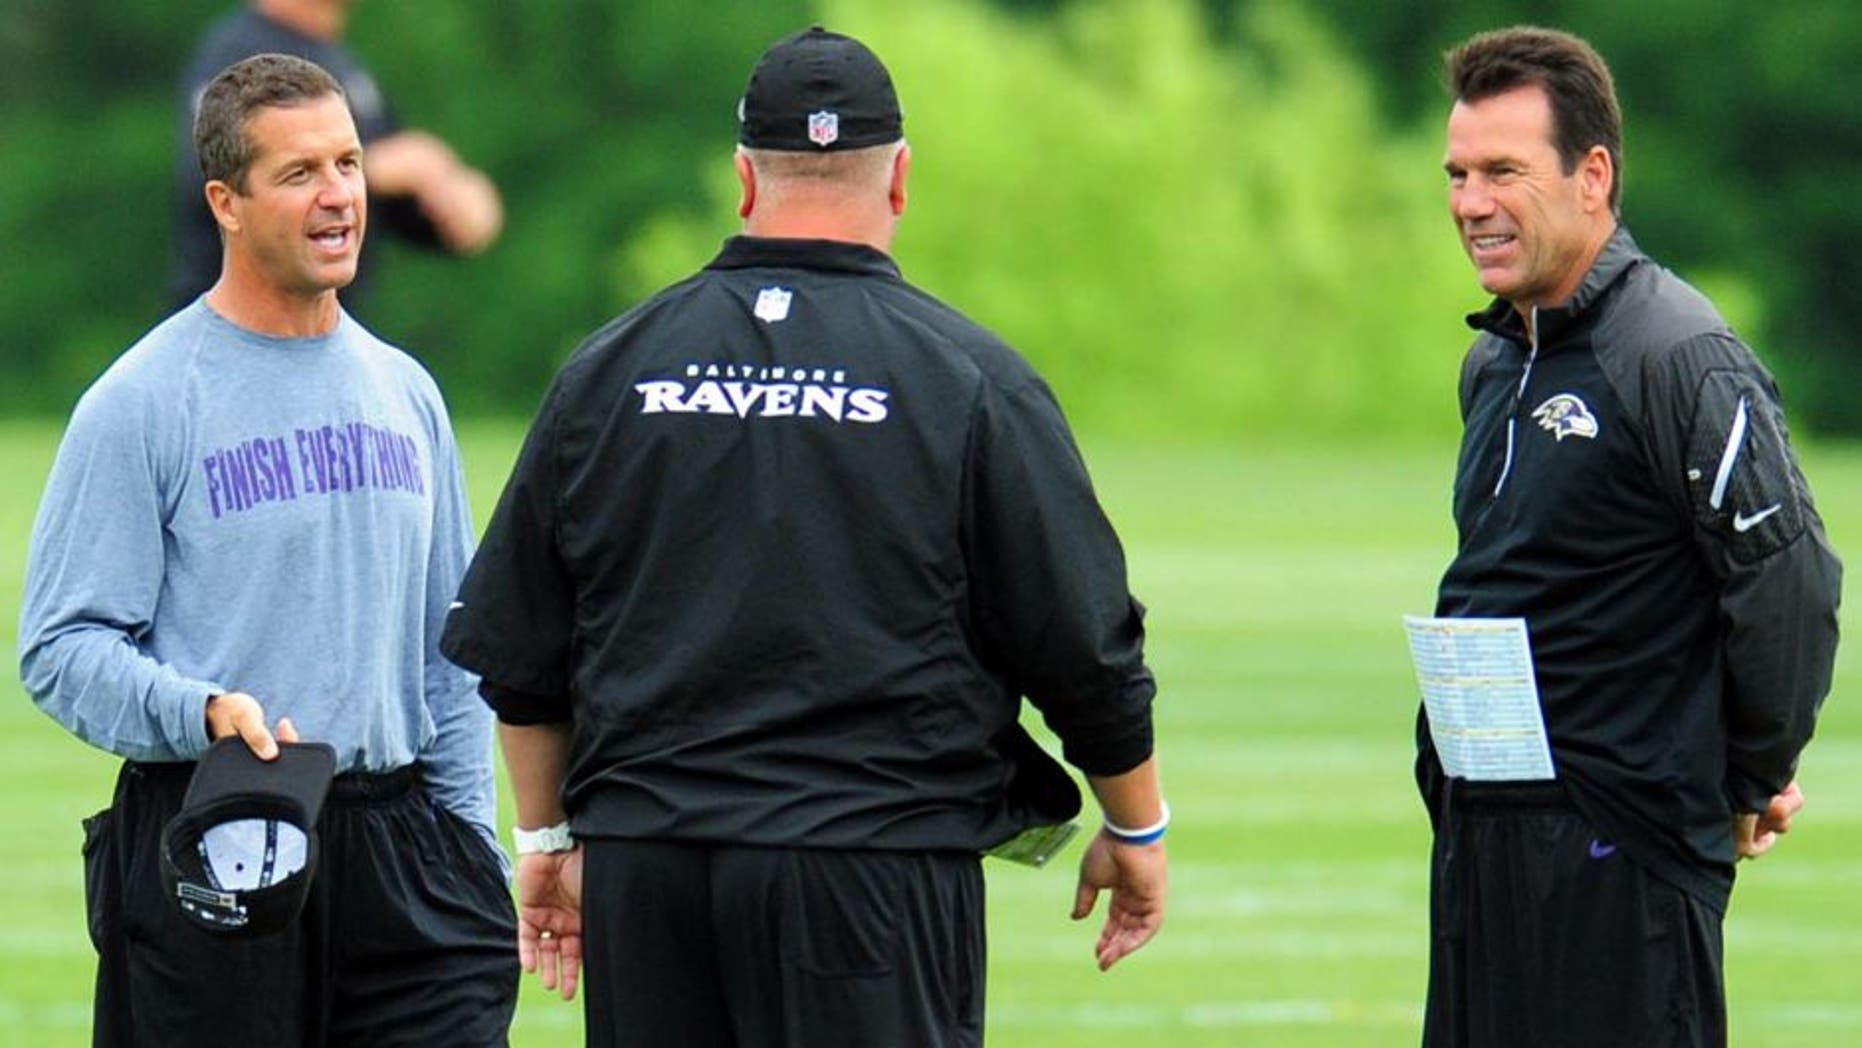 Jun 19, 2014; Baltimore, MD, USA; Baltimore Ravens head coach John Harbaugh (left) and offensive coordinator Gary Kubiak (right) talk during minicamp at the Under Armour Performance Center. Mandatory Credit: Evan Habeeb-USA TODAY Sports